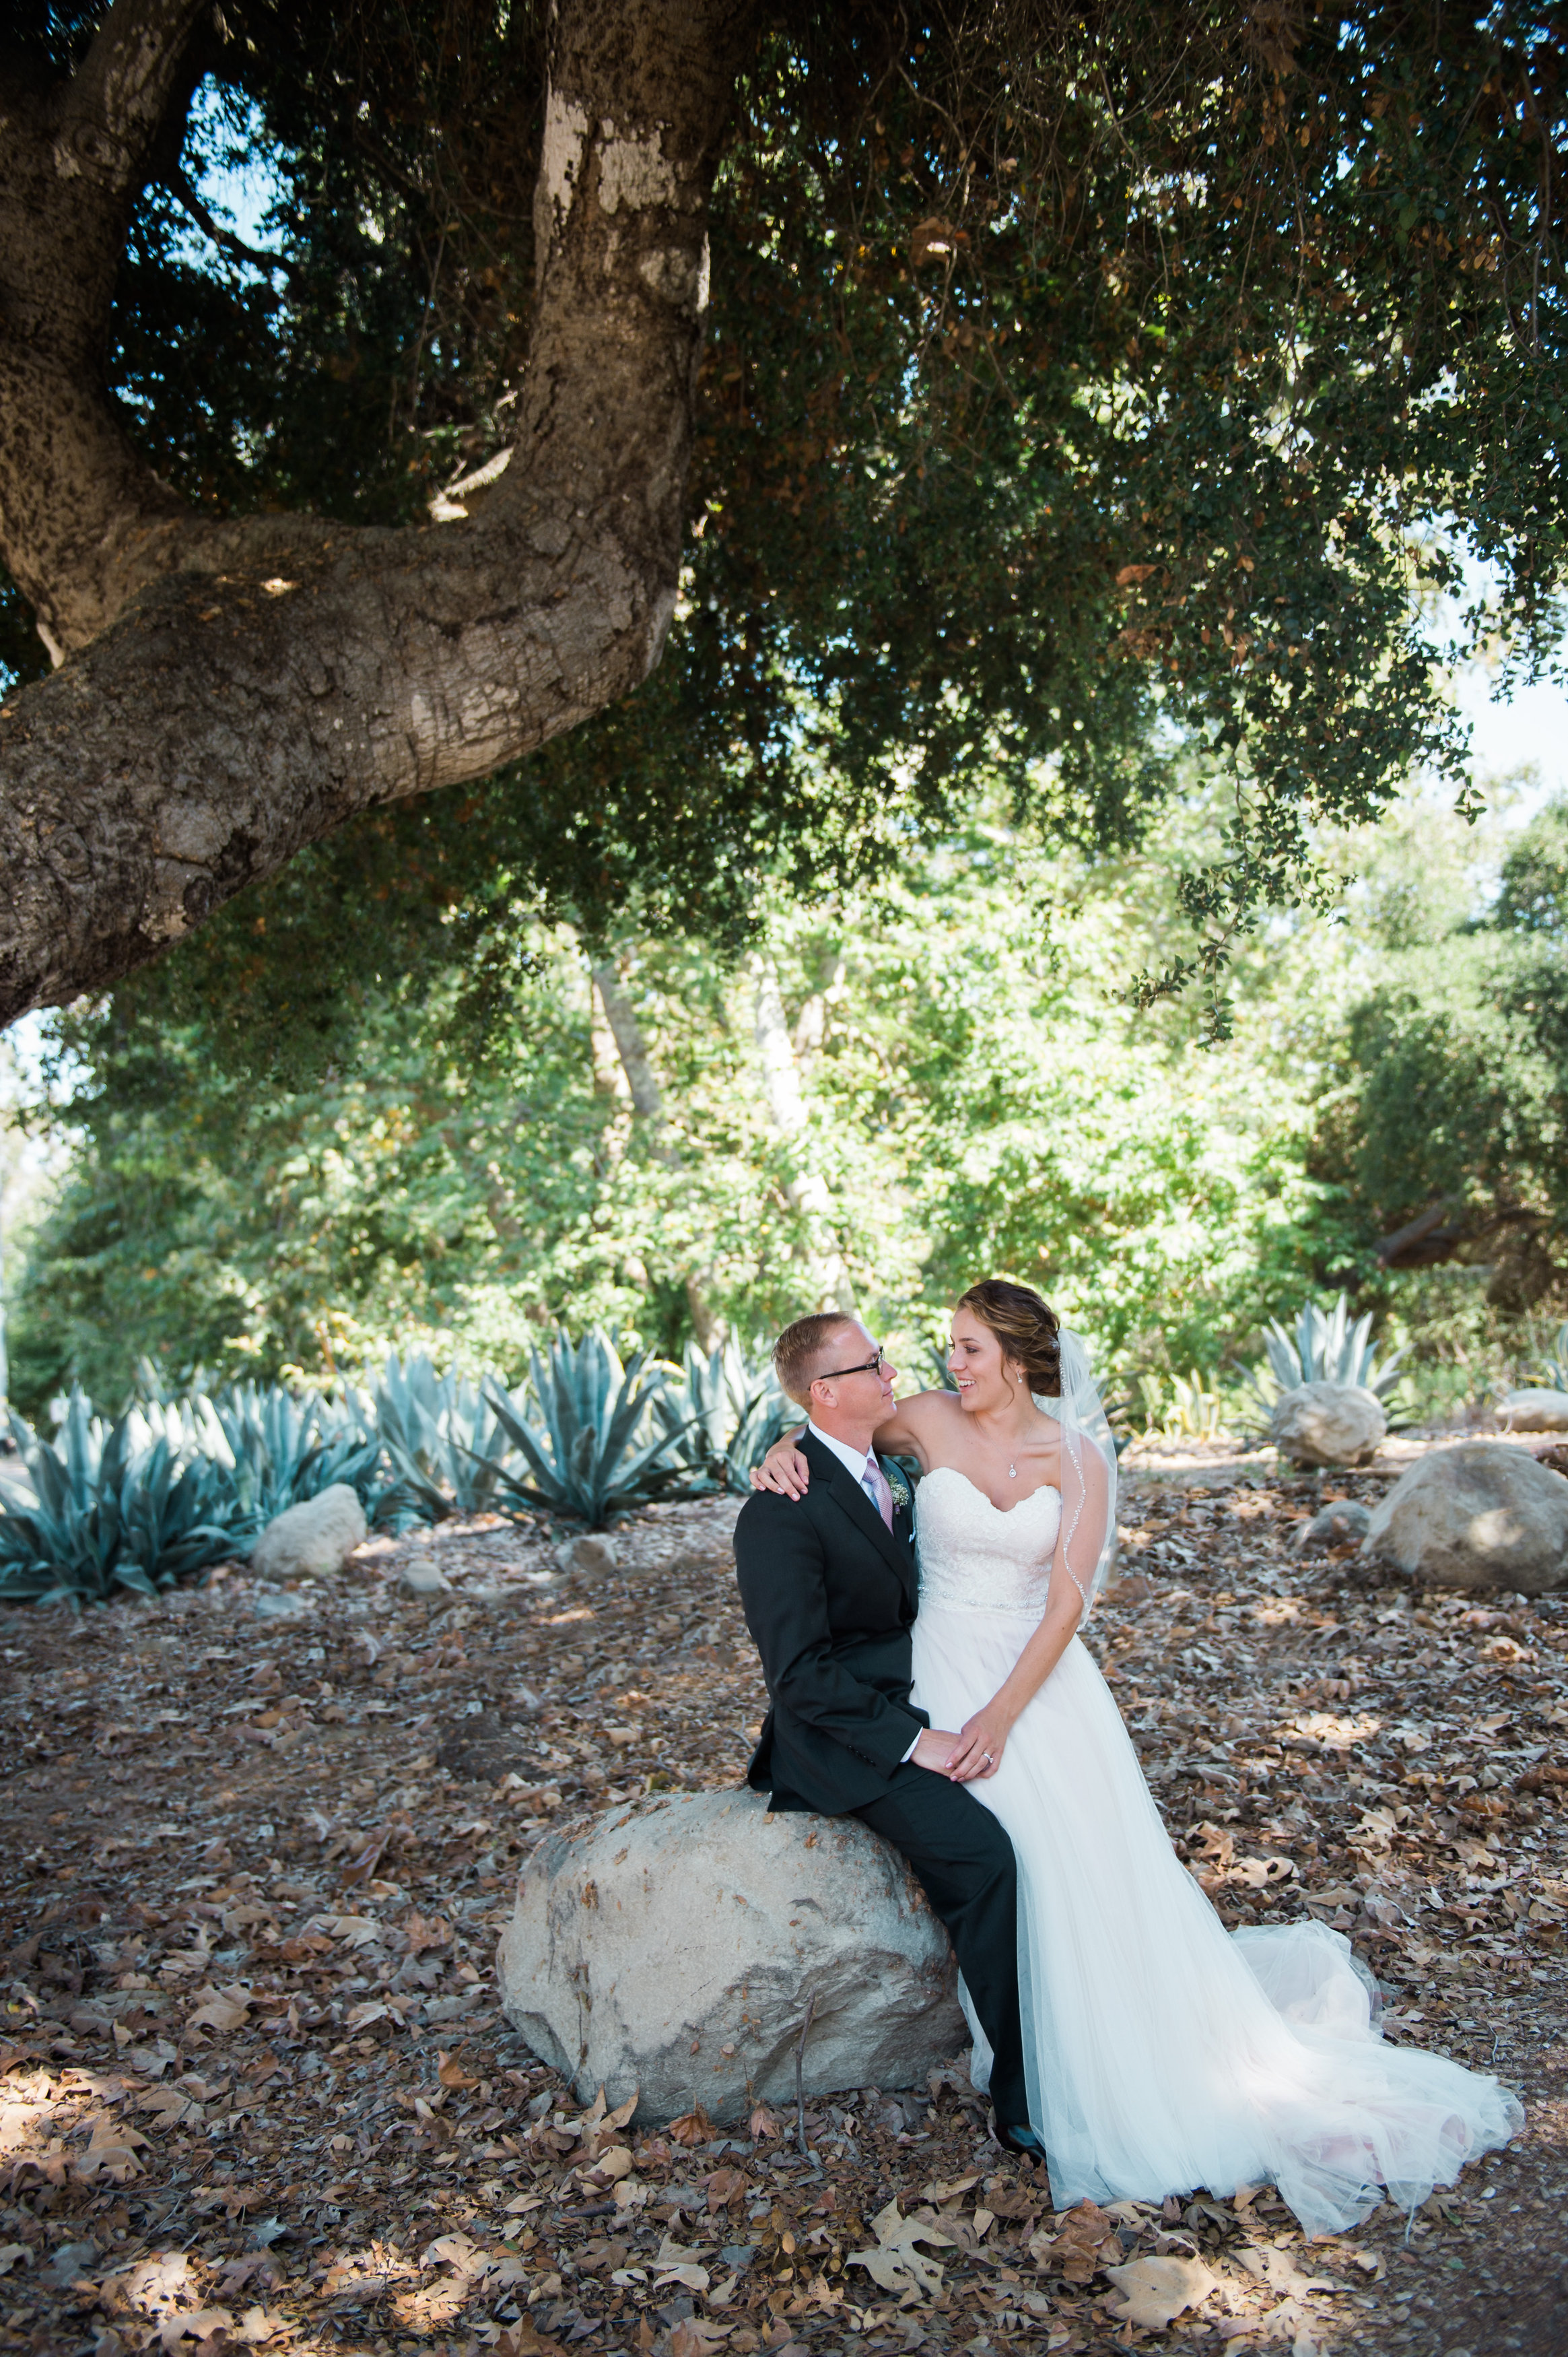 Carpinteria, CA Wedding Photographer | Jennifer Lourie